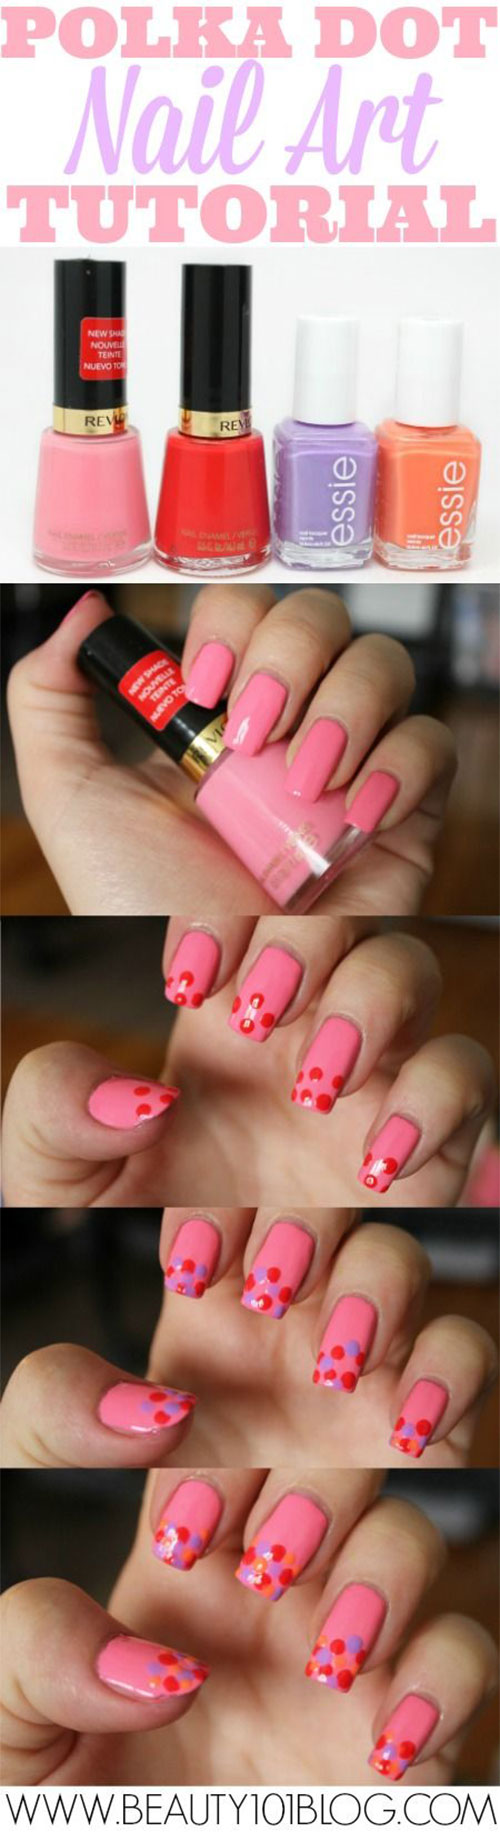 20-Simple-Step-By-Step-Polka-Dots-Nail-Art-Tutorials-For-Beginners-Learners-2014-4